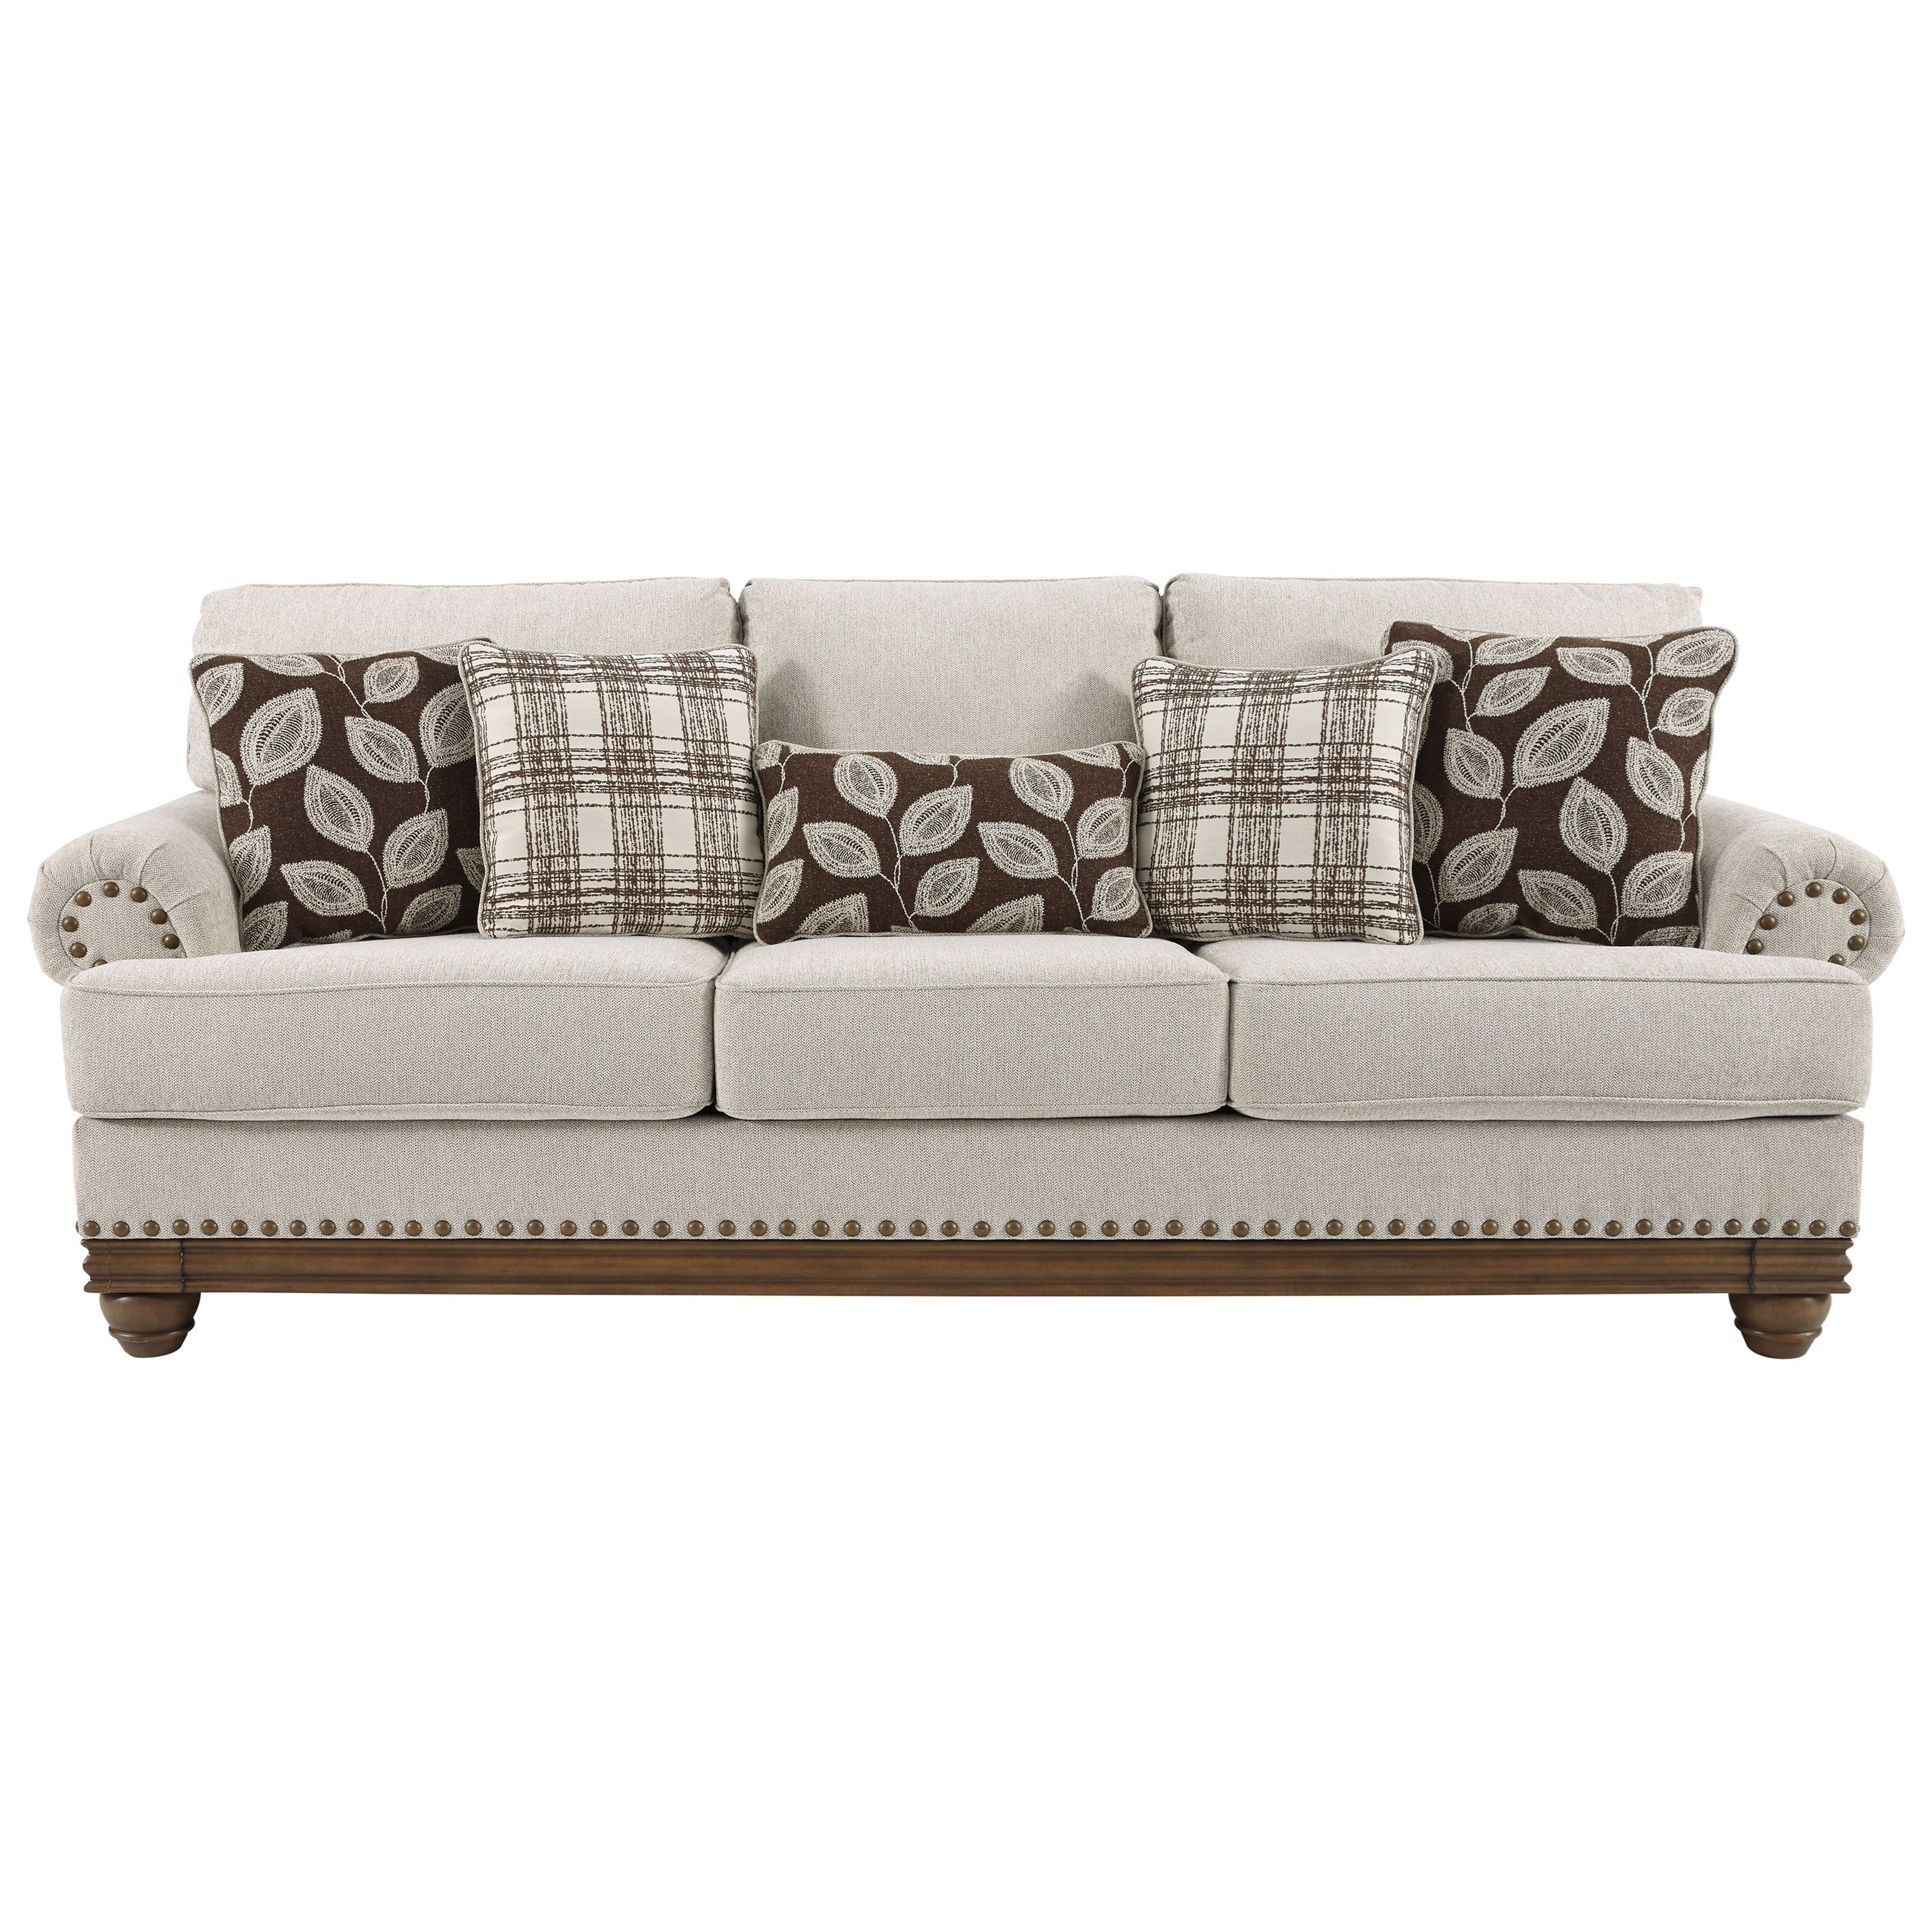 Ashley Furniture Sofas: Signature Design By Ashley Harleson Transitional Sofa With